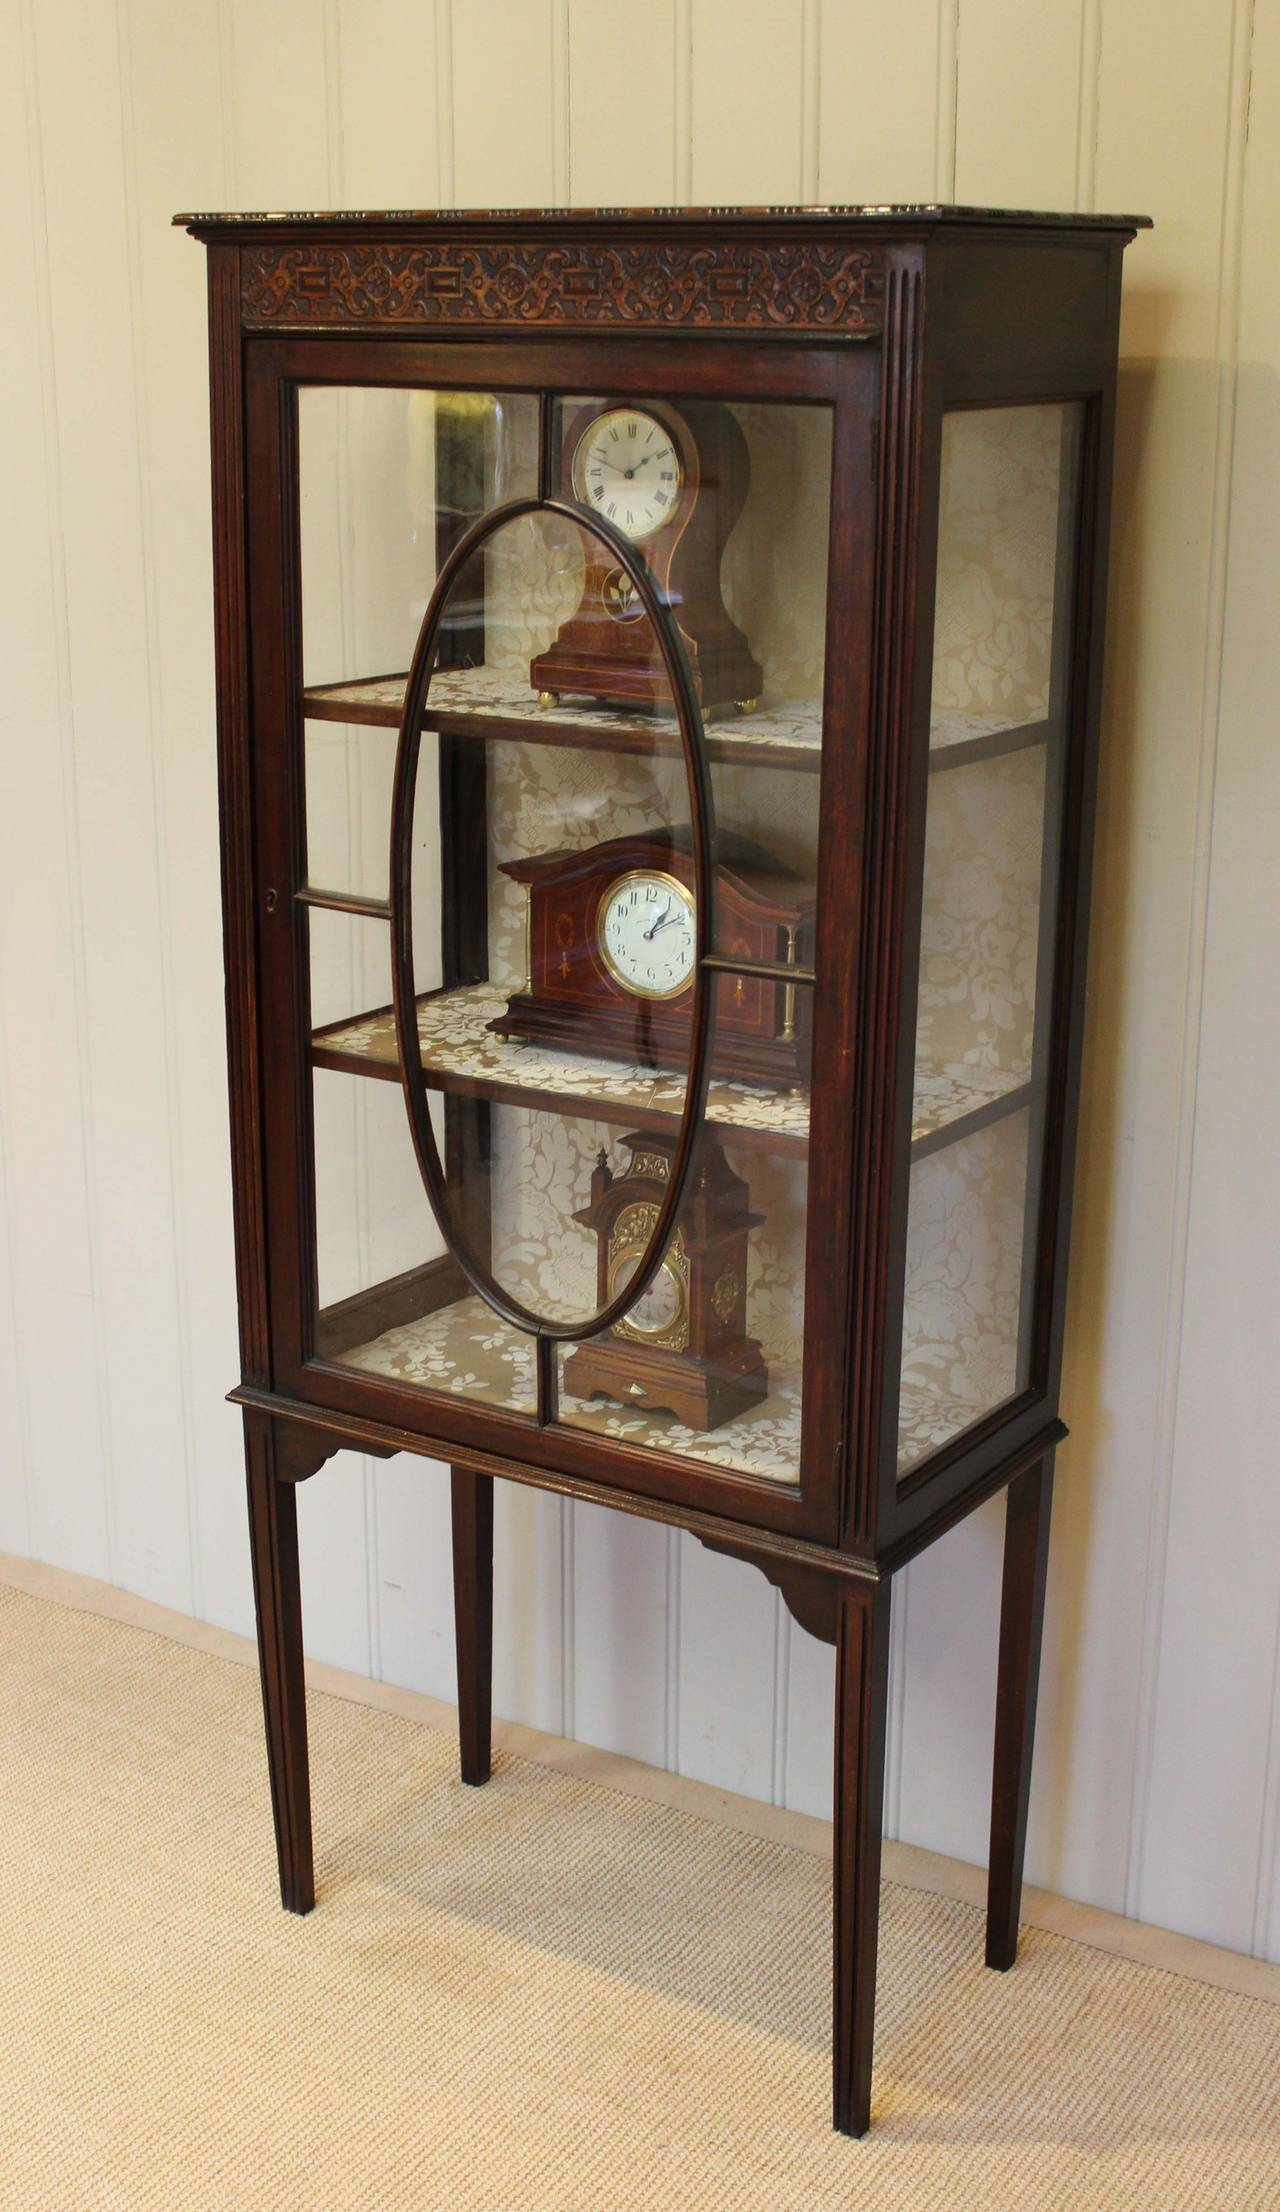 #907E3B Mahogany Display Cabinet At 1stdibs with 1280x2212 px of Recommended Mahogany Display Cabinets With Glass Doors 22121280 save image @ avoidforclosure.info